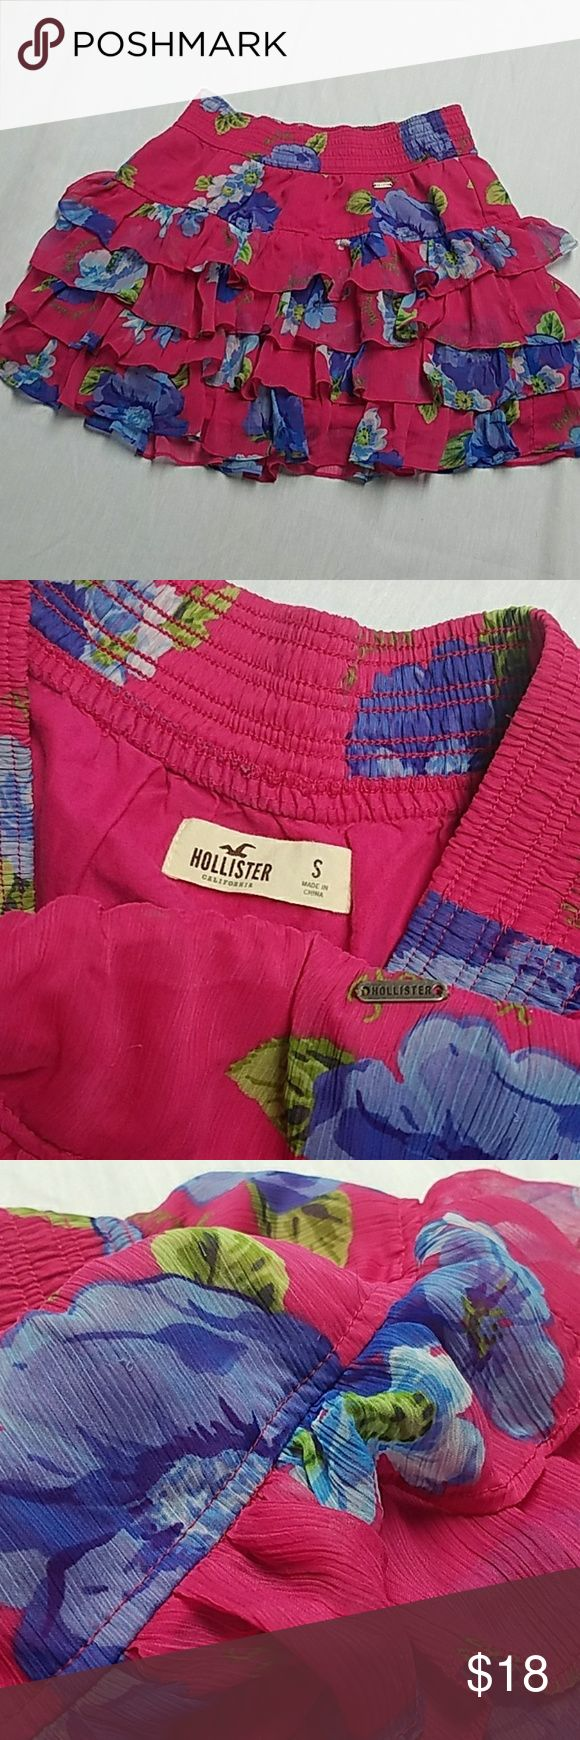 Hollister Skirt Adorable Layered Mini Skirt From Hollister Size S small Fusia with Blue flowers Banded Waist  NEW W/OUT TAGS Hollister Skirts Mini